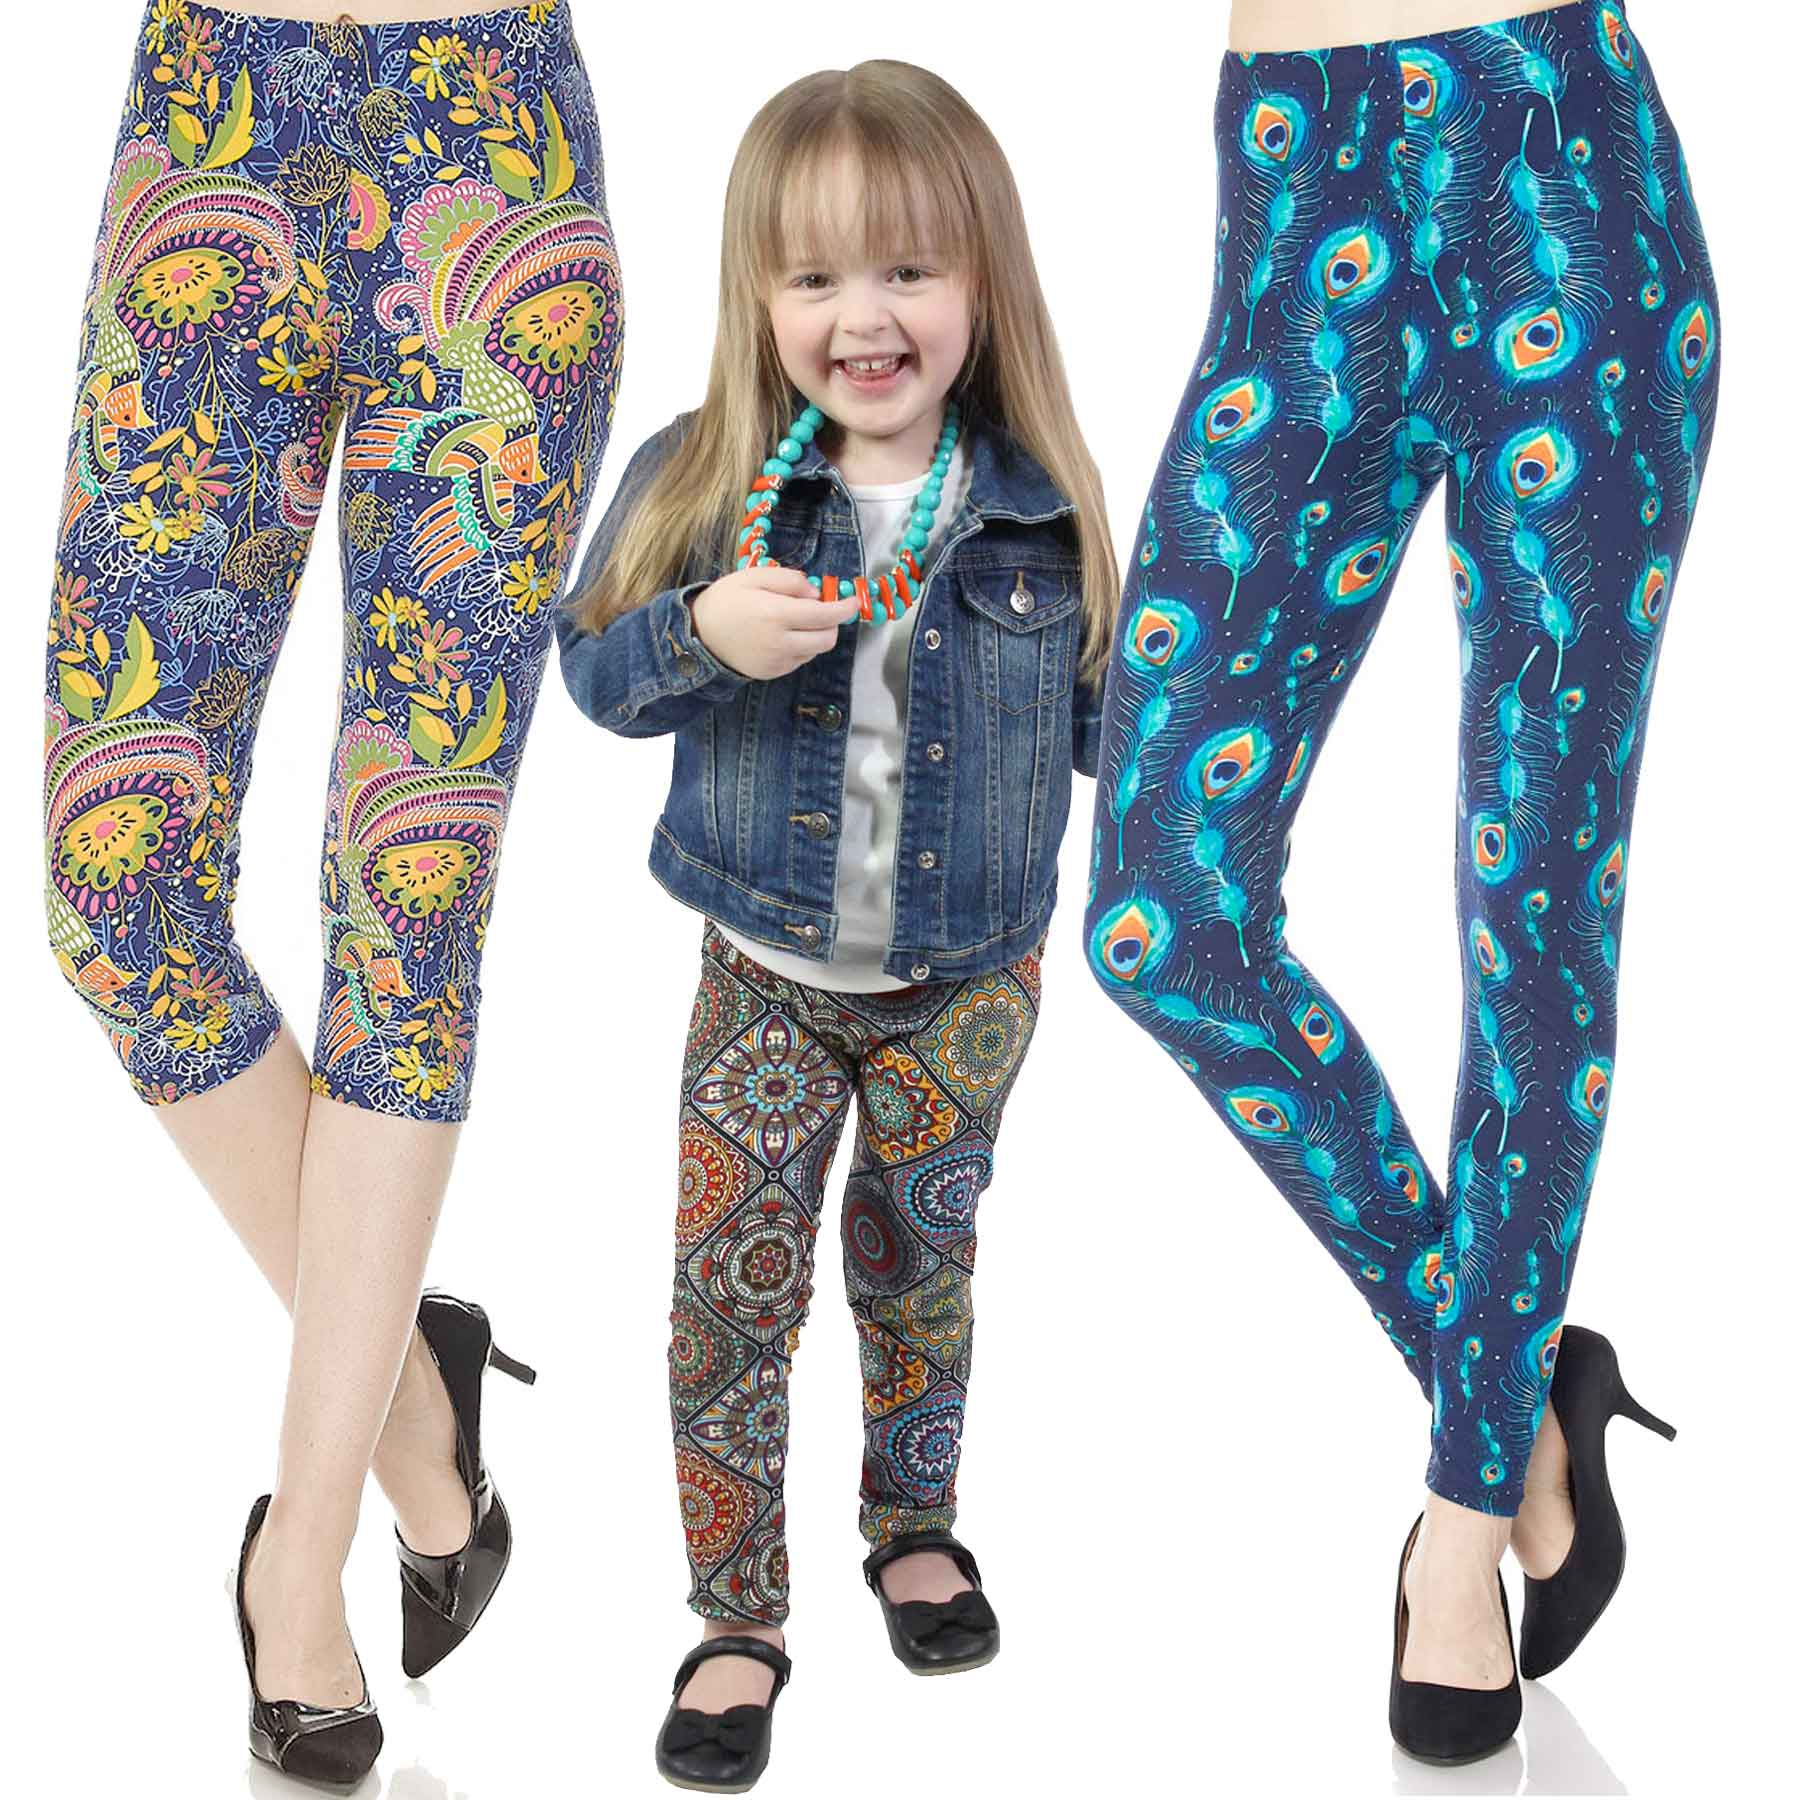 Brushed Fiber Leggings, Capris, & Kids Sizes